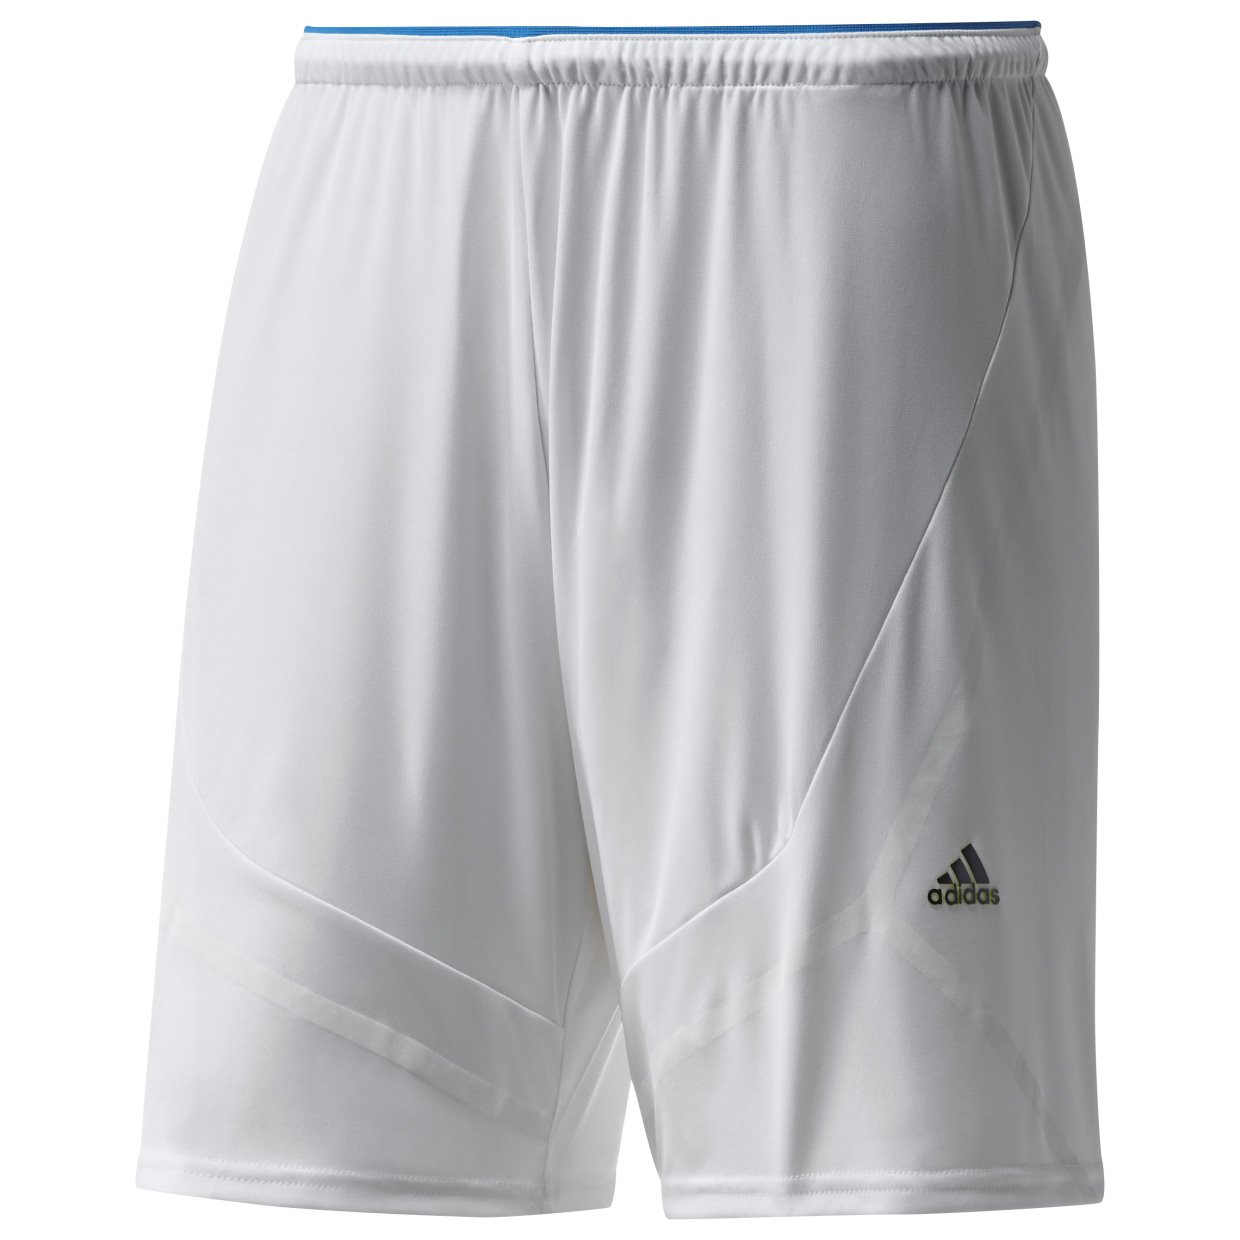 Adidas adiZero F50 Messi Training Short White